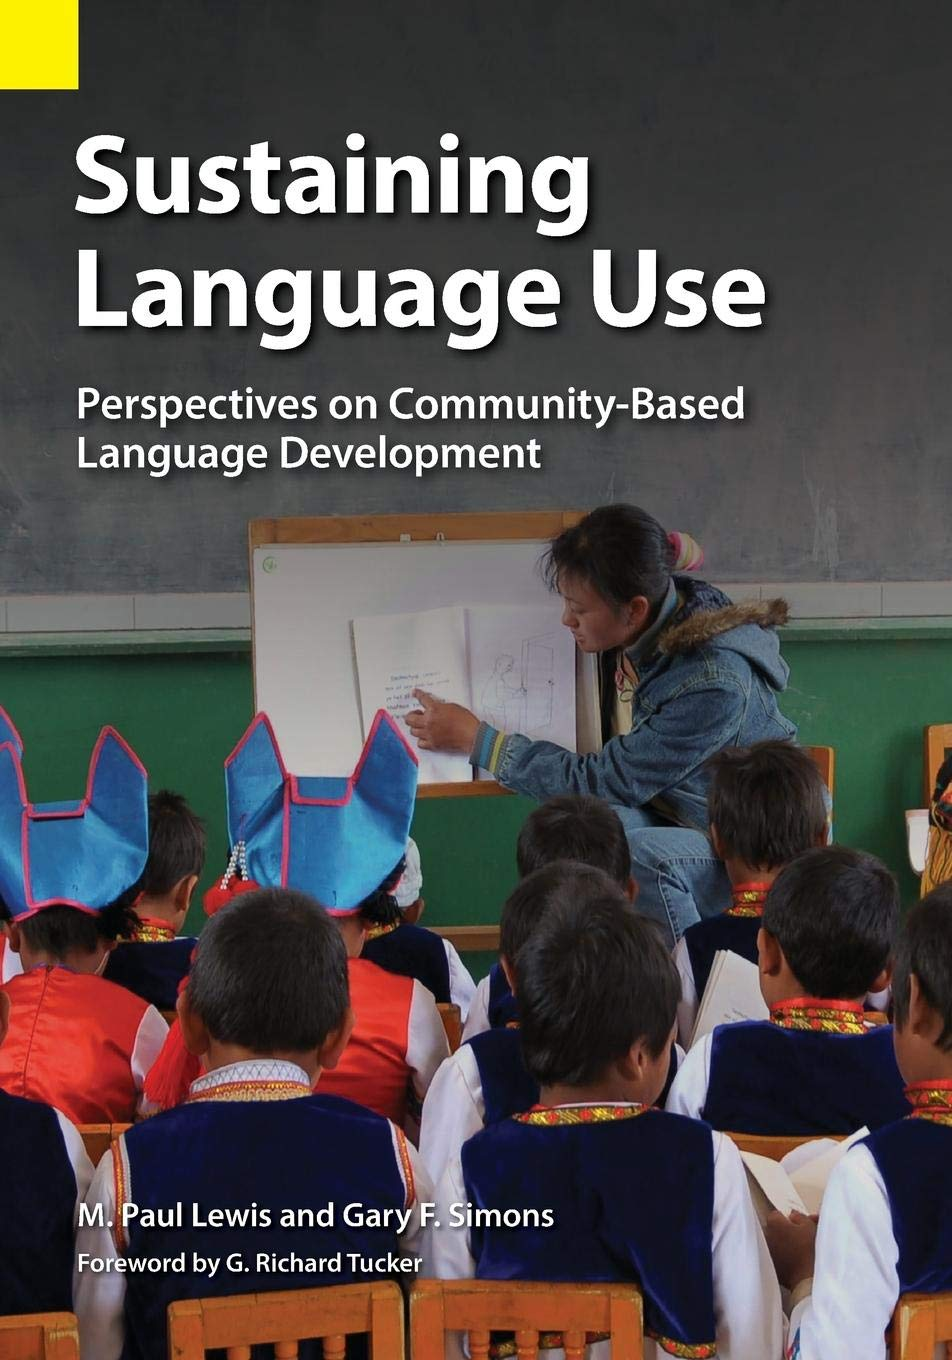 Sustaining Language Use: Perspectives on Community-Based Language Development by Summer Institute of Linguistics, Academic Publications